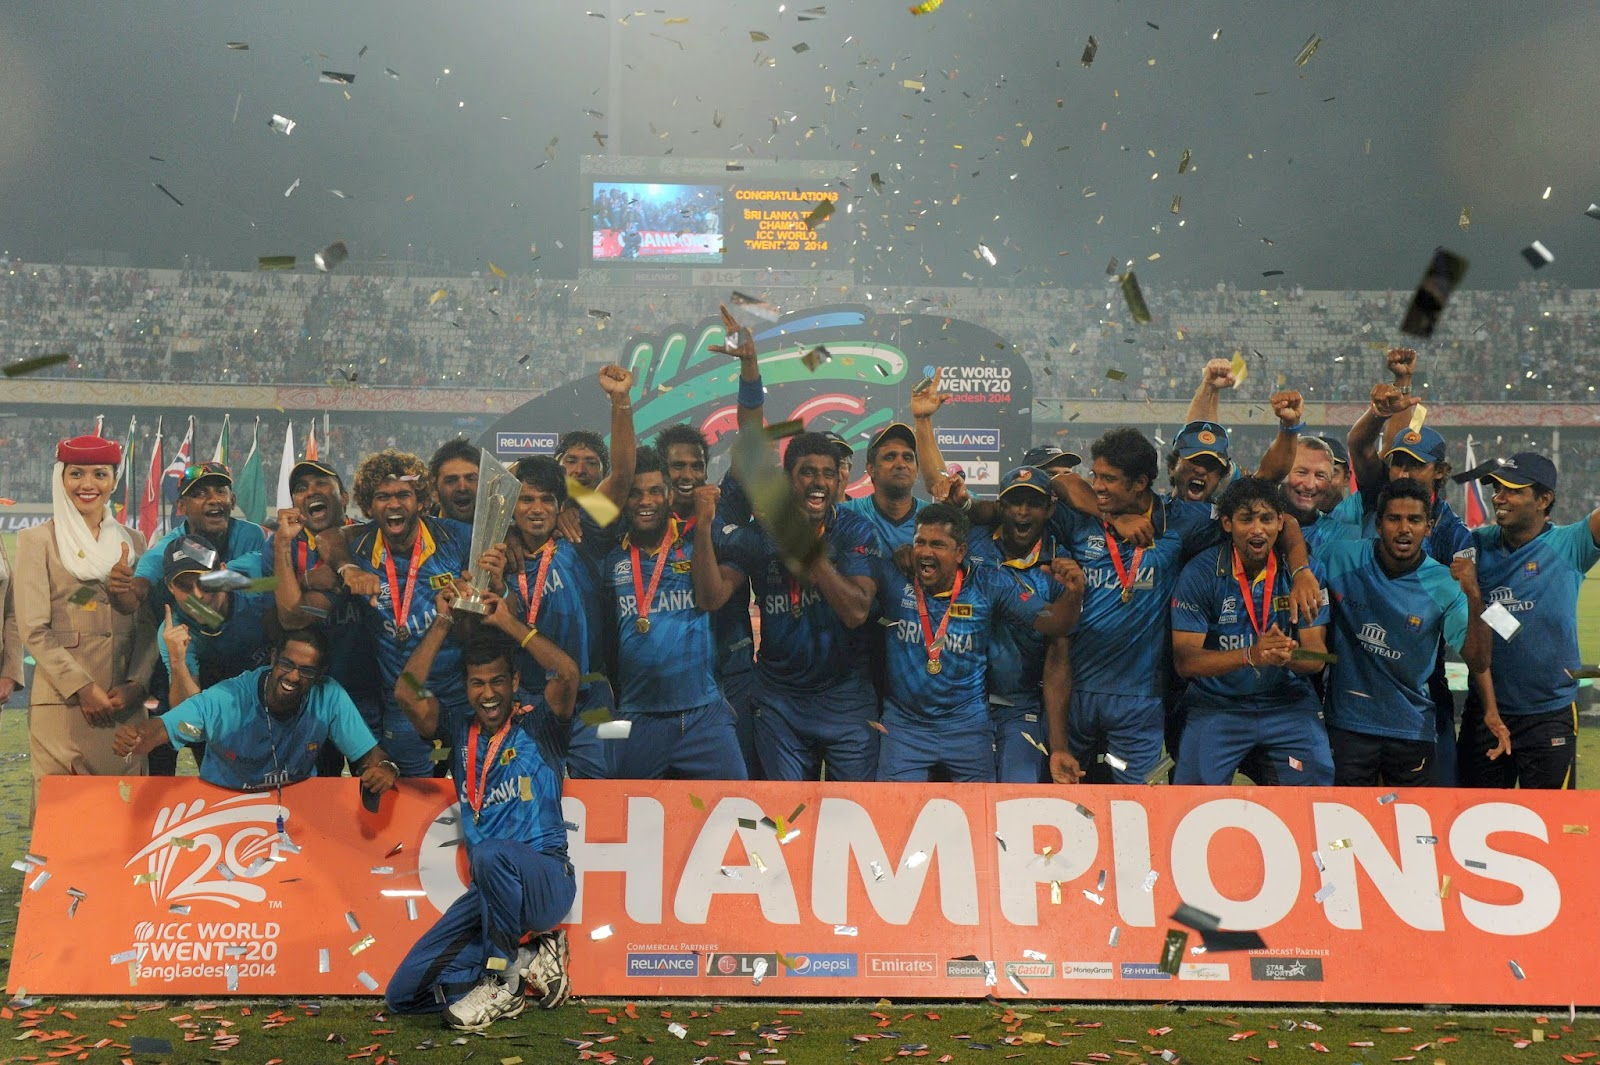 Bangladesh, Cricket, England, ICC, ICC World T20 2014, India, Pakistan, Sports, Twenty20, West Indies, Winner of T20 Wold Cup, World Cup 2014, Sri Lanka,